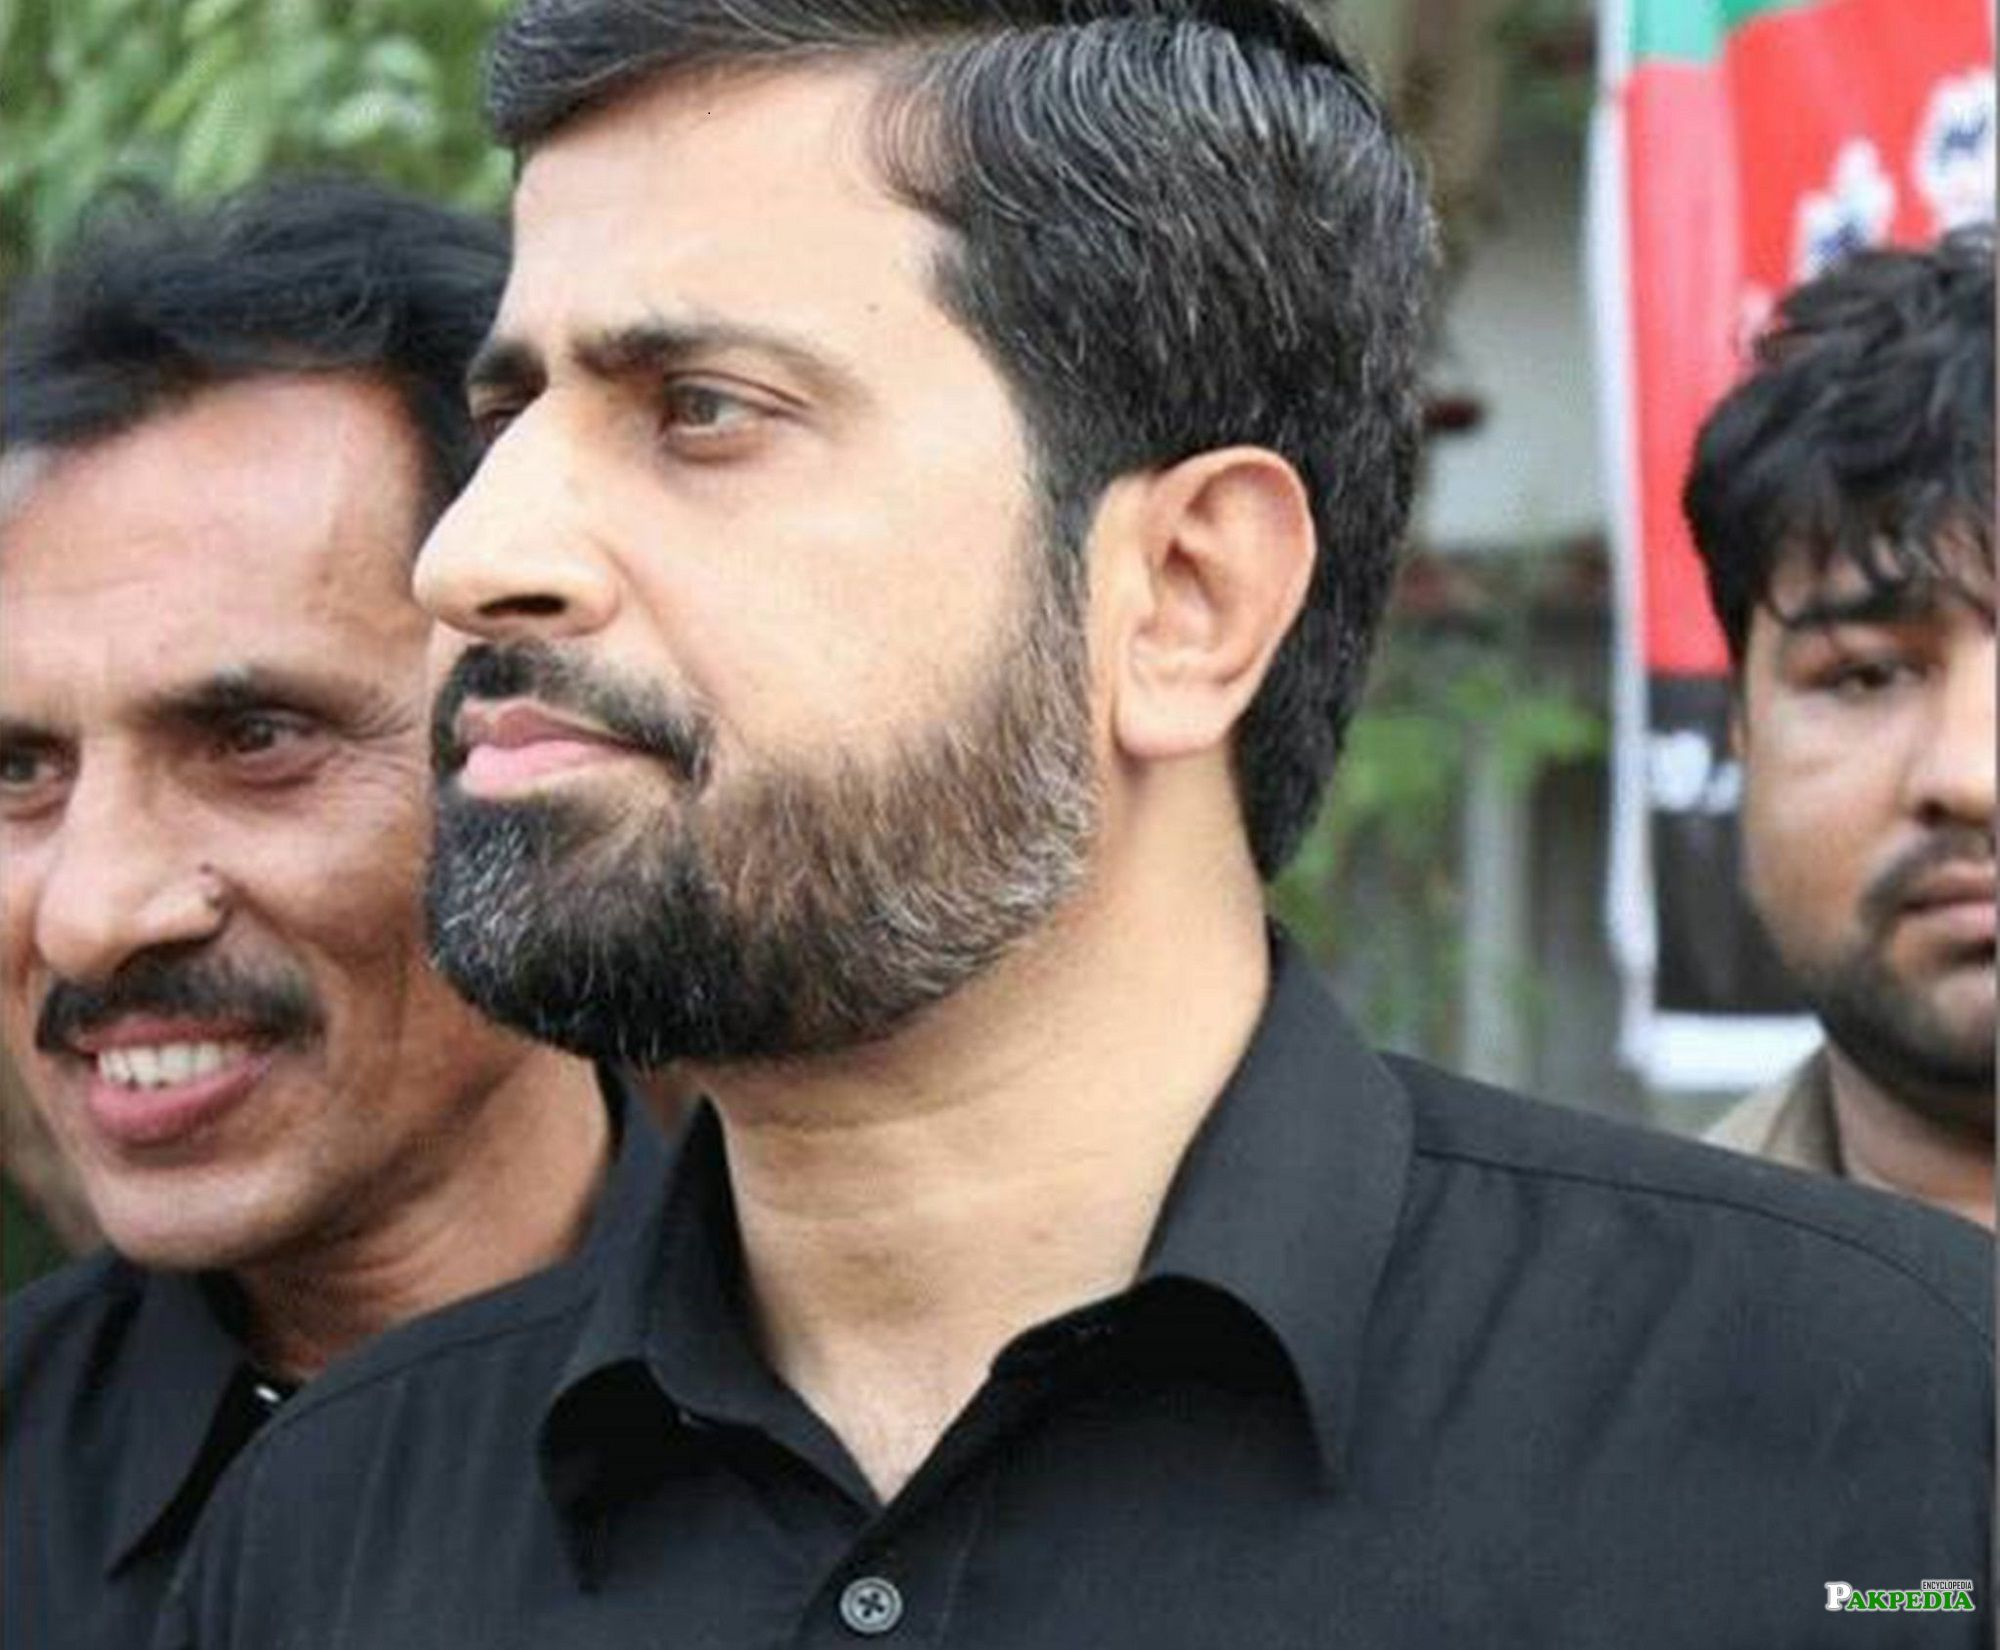 Fayyaz ul Hassan has been trolled for using harsh words against hindus